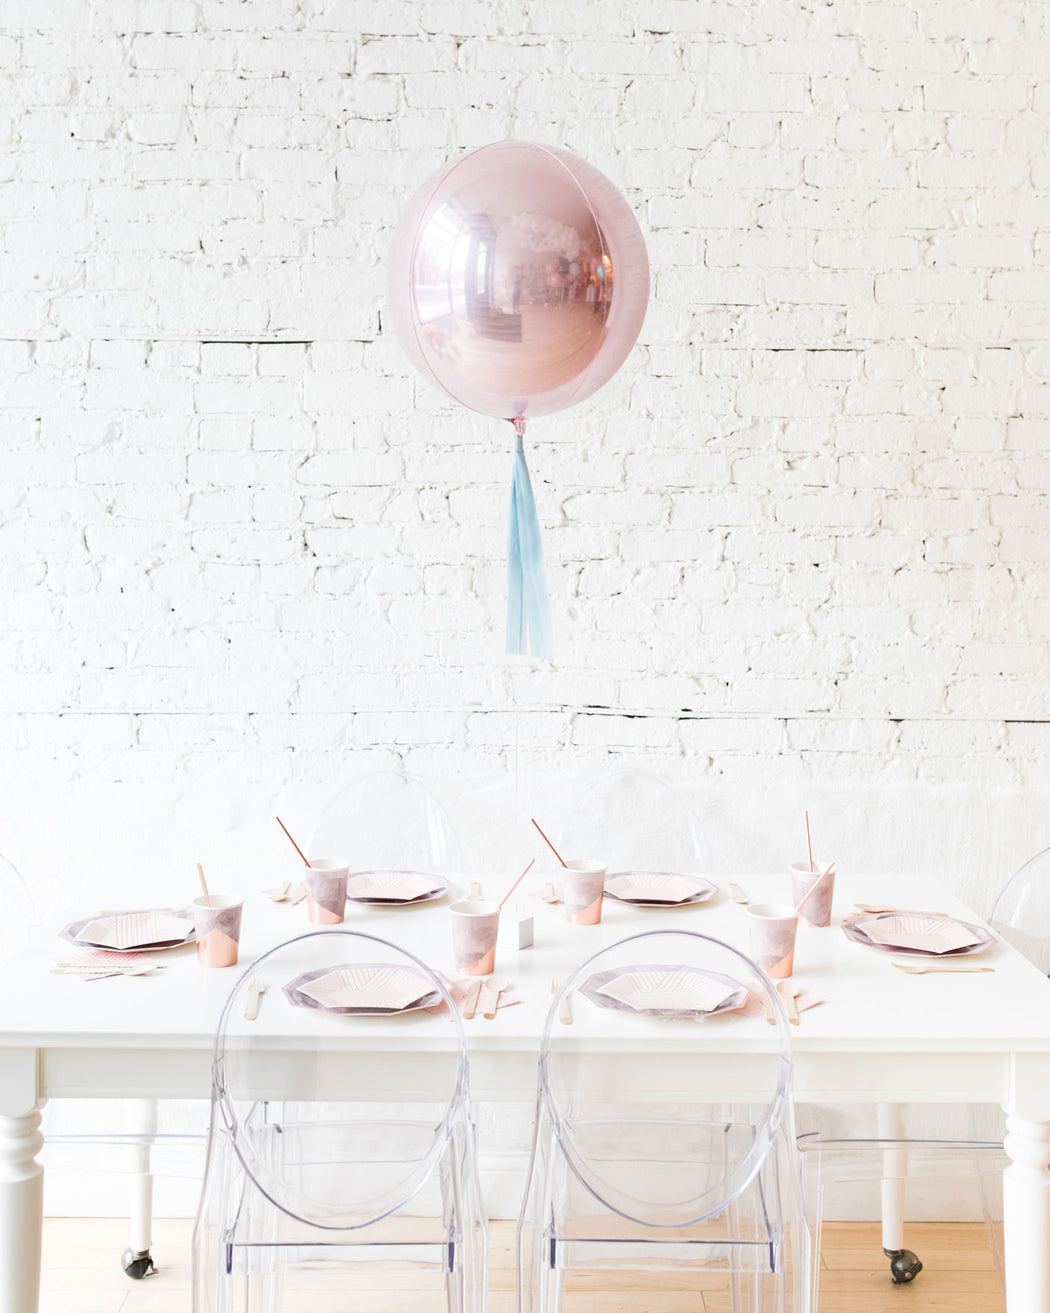 16in Pastel Pink Orb Foil Balloon with French Blue Skirt Centerpiece